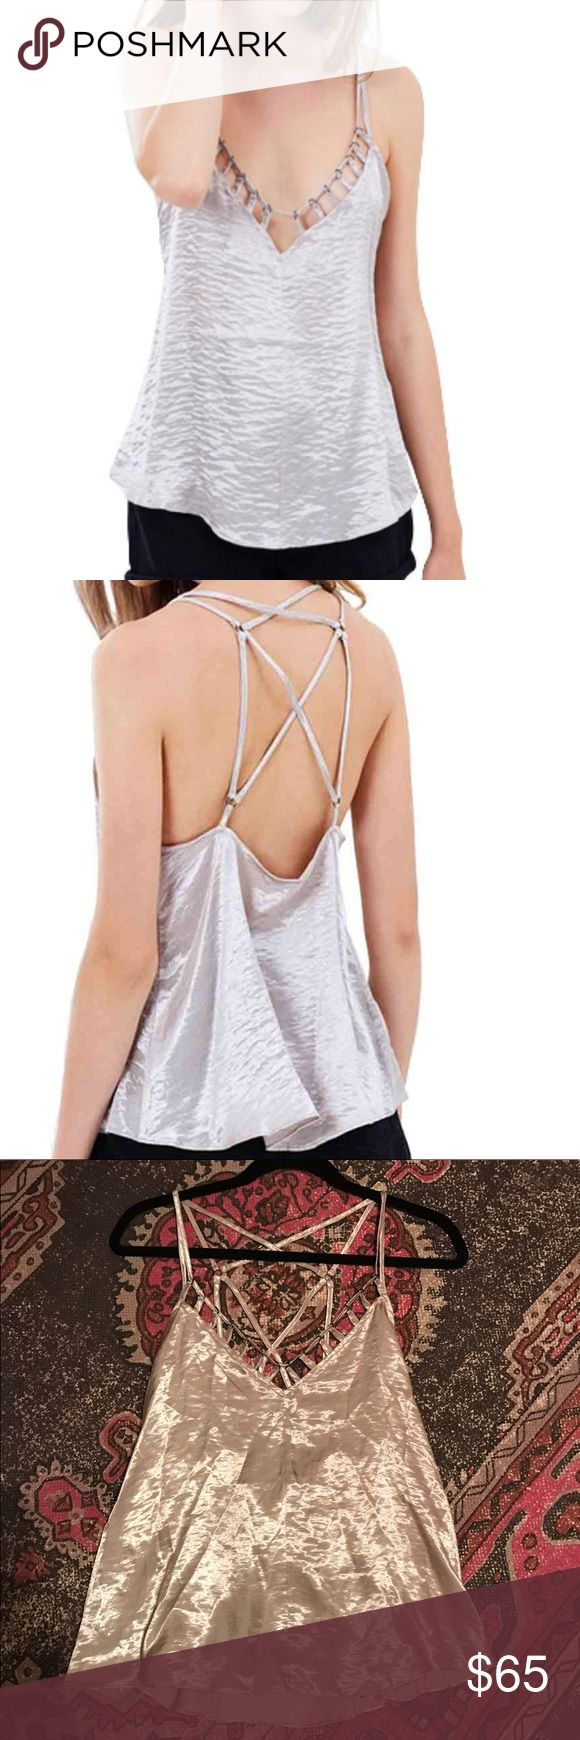 NWT Free People Silver Haze Cami Top NWT size Small • Gorgeous silver cami-style top • embellished detail • cut out detail • Strappy back • Pullover styling • This top is stunning!!  No flaws Free People Tops Tank Tops